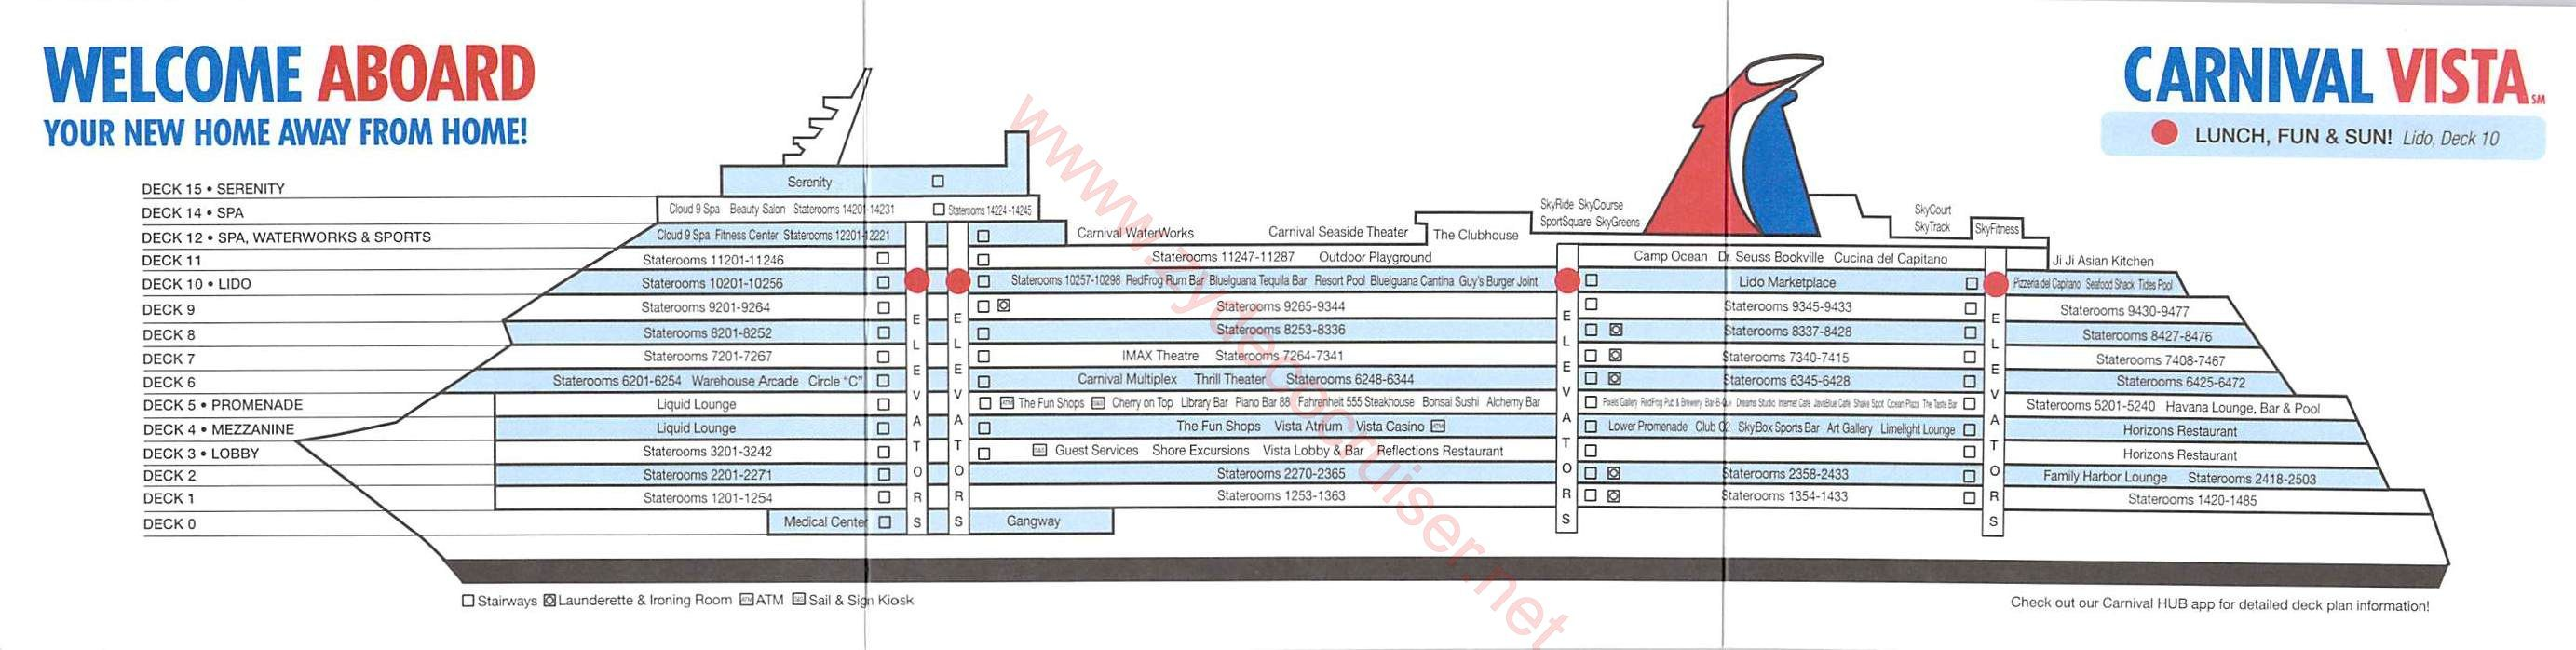 carnival cruise ship diagram sony cdx gt57up wiring deck plans vista plan card front back